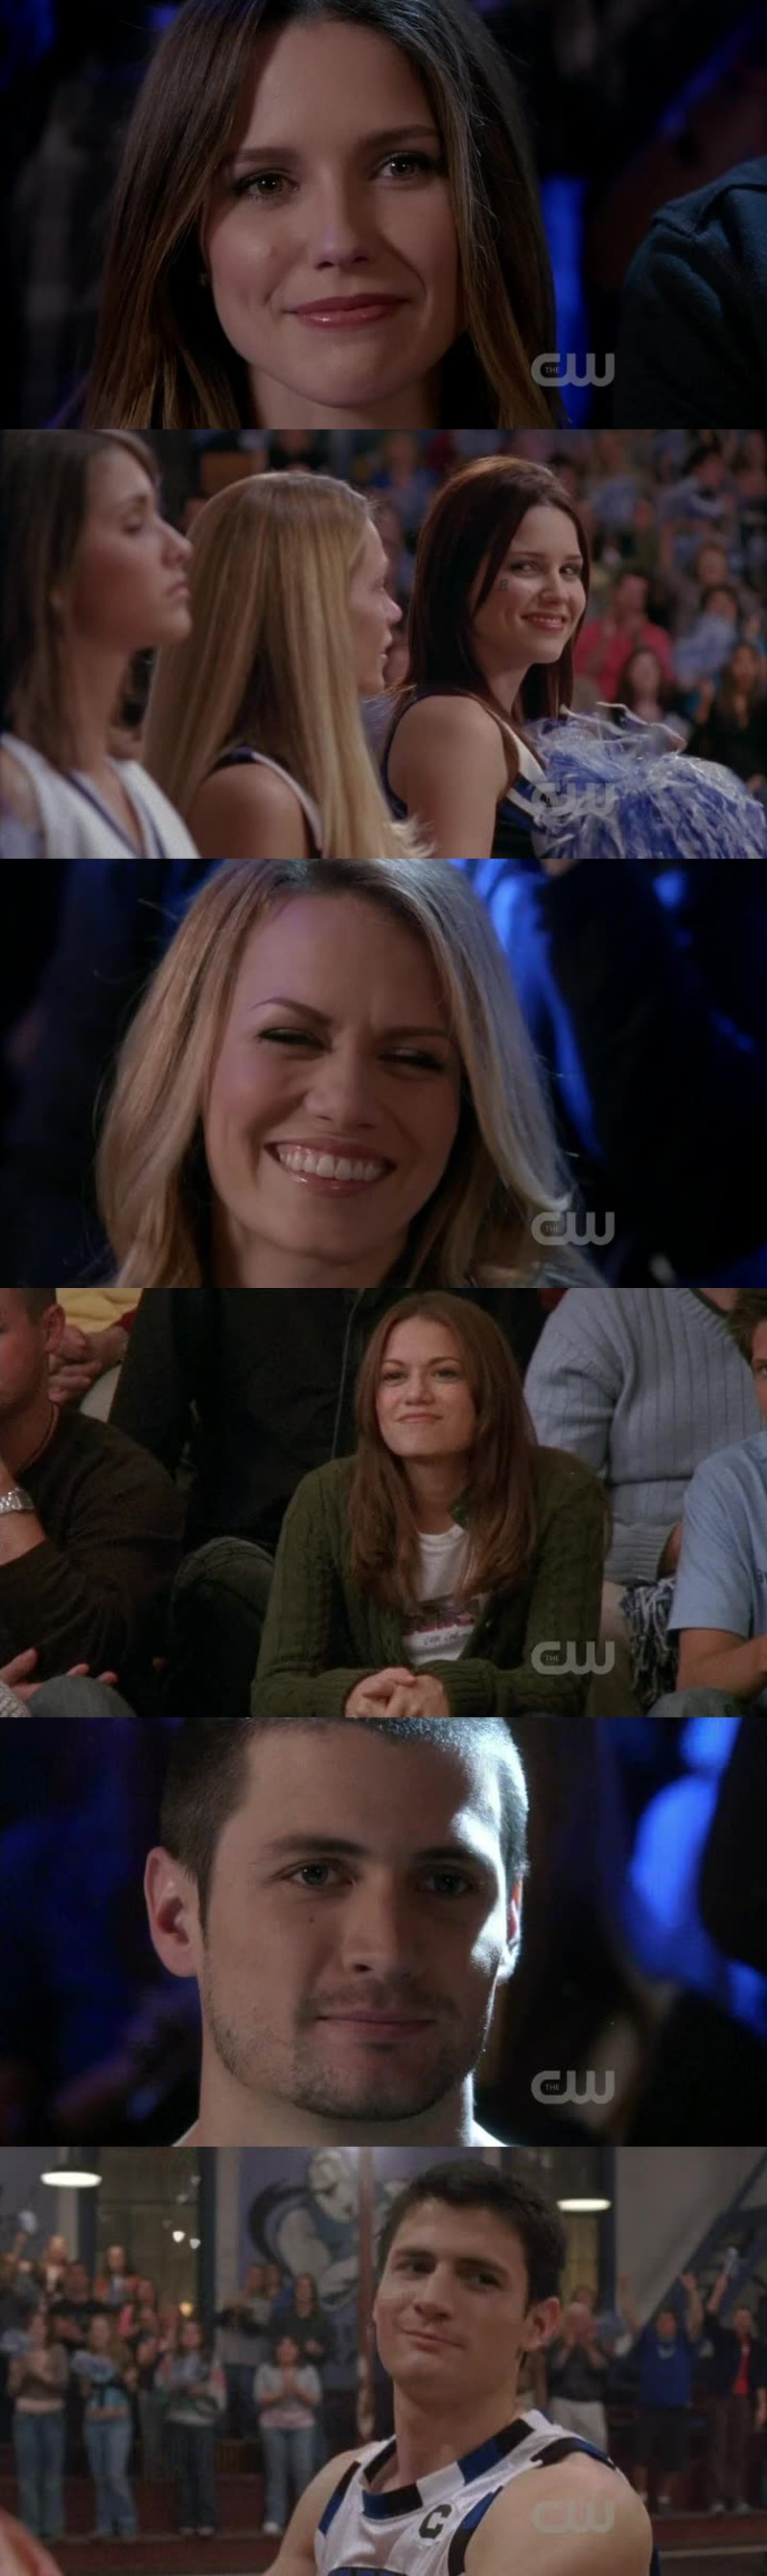 I've just finished watching oth, and I just want to start rewatching again. BEST TV SHOW EVER! I have no words to describe how incredible this tv show is. OTH will always be in my heart. Always and forever ❤️️